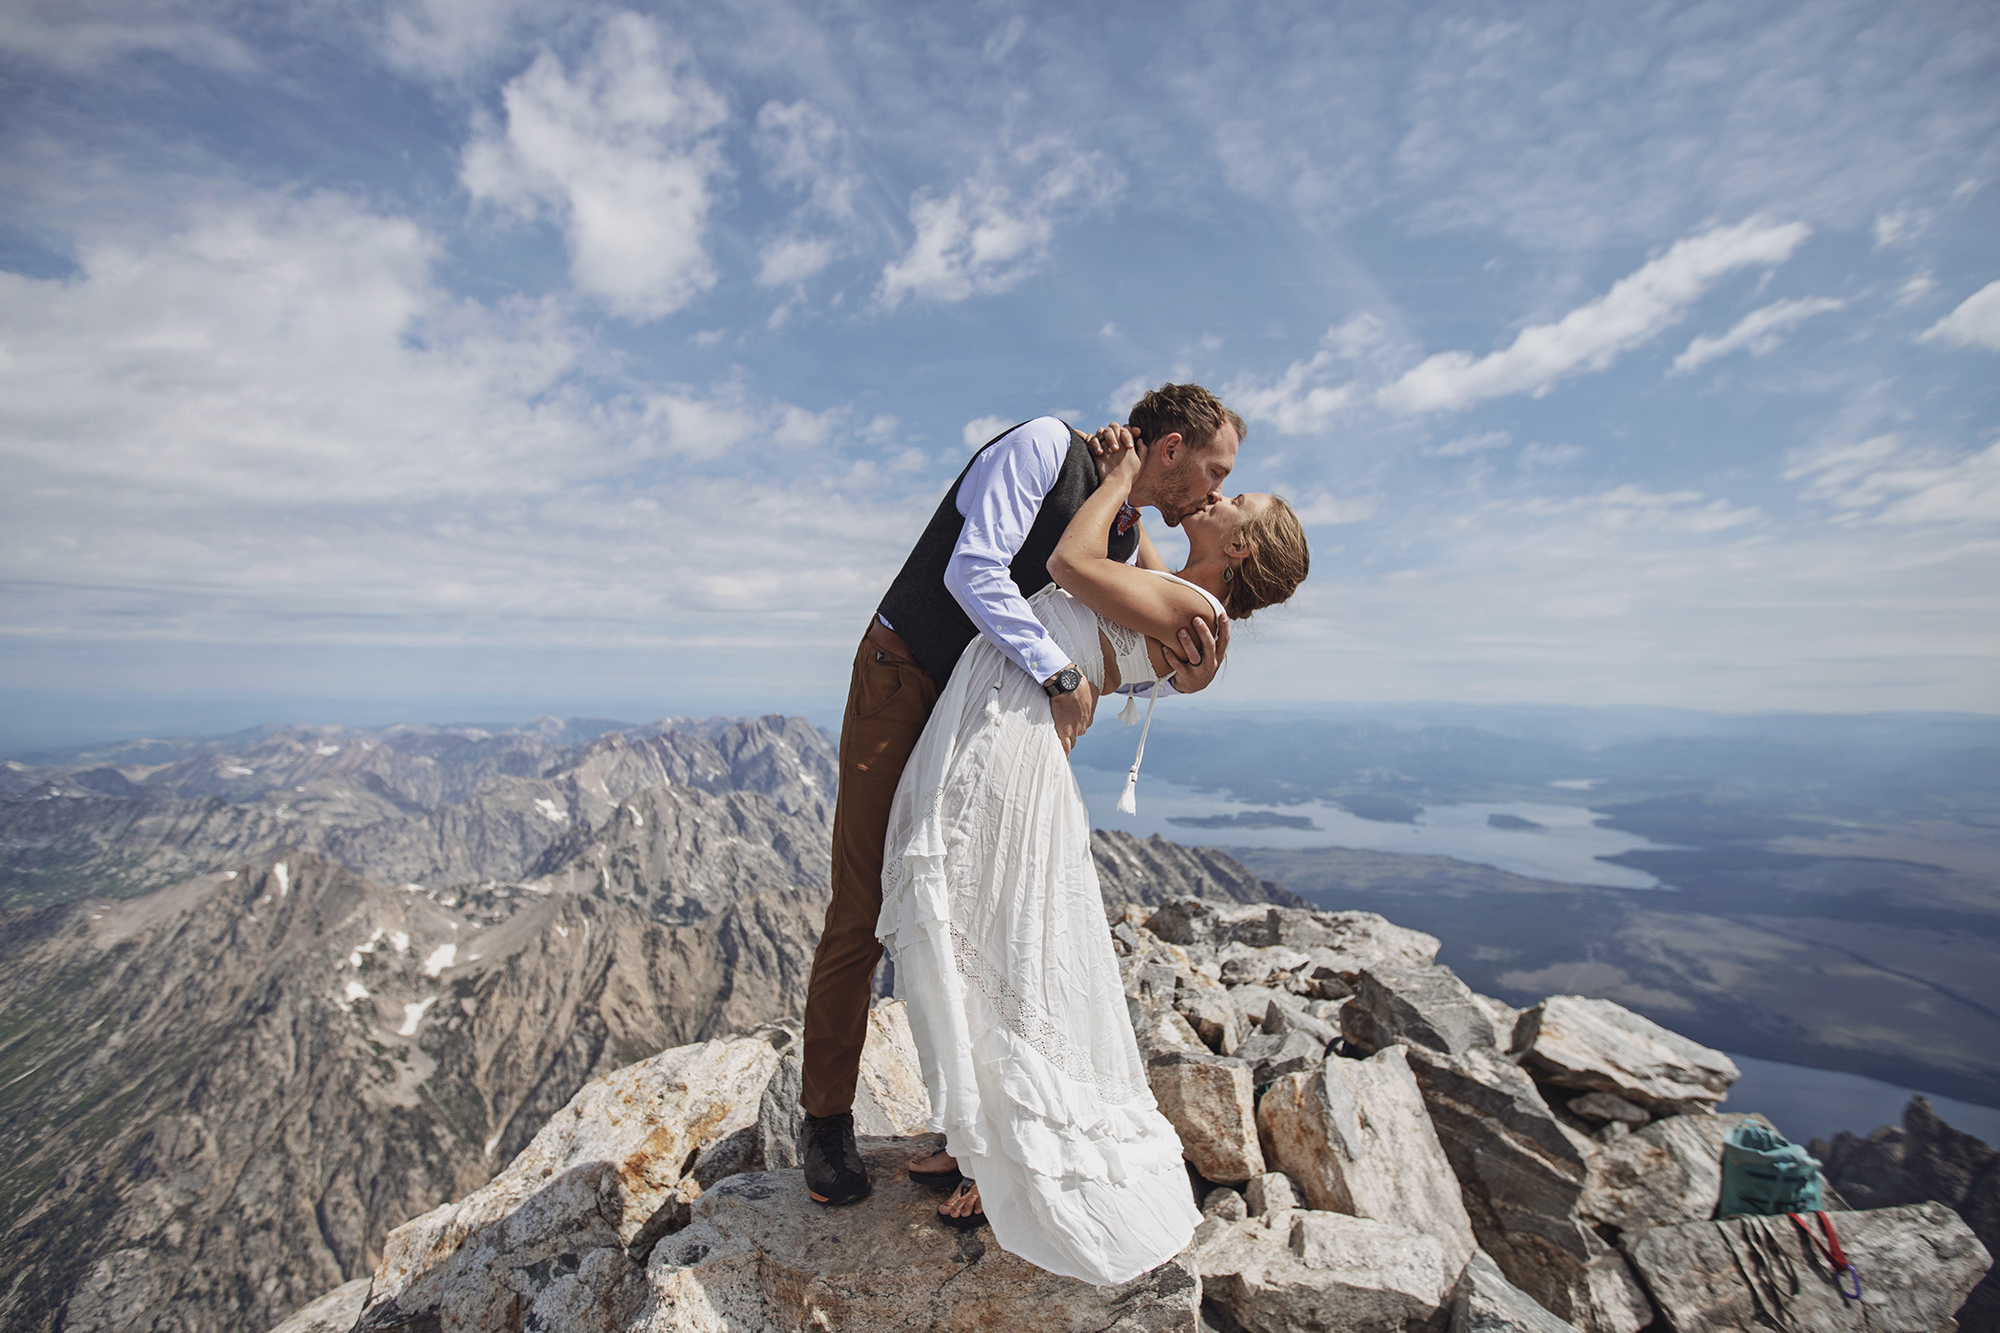 Liz and Collin, the summit of the Grand Teton, Jackson Hole, Wyoming.